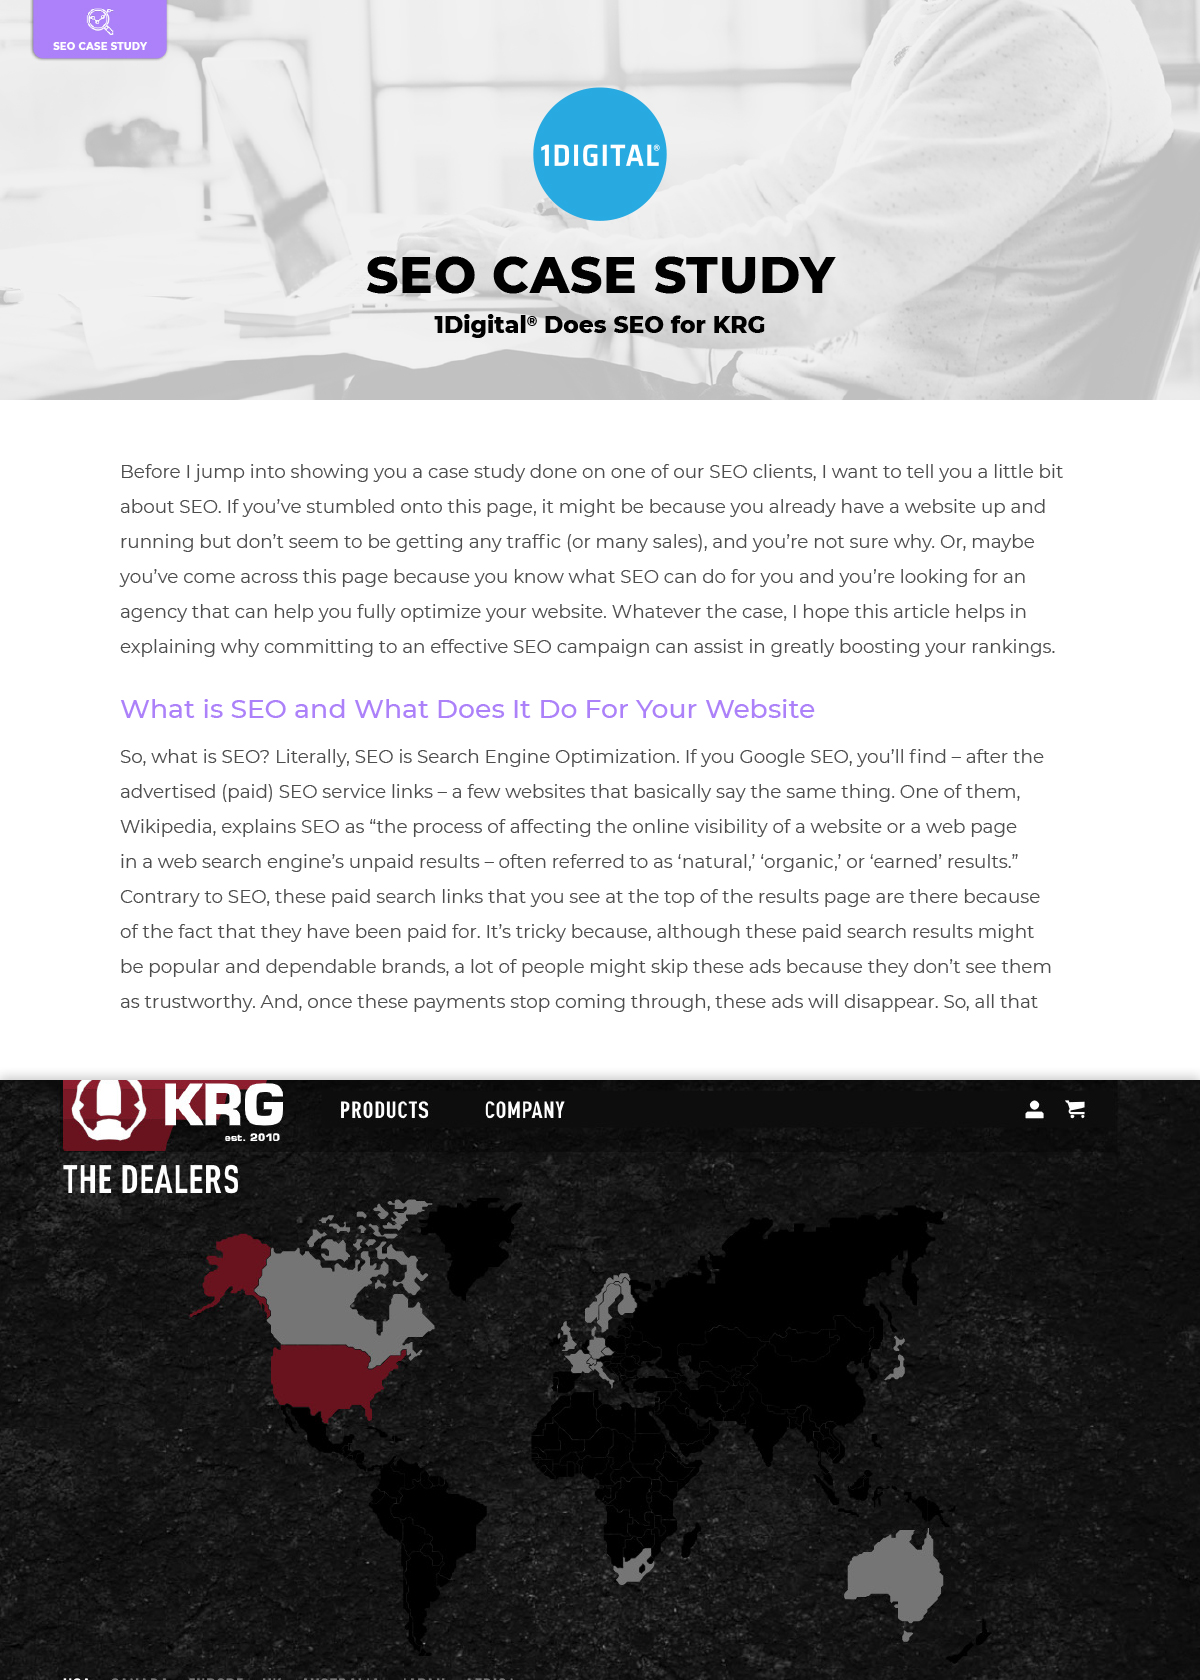 1Digital<sup>®</sup> Does SEO for KRG